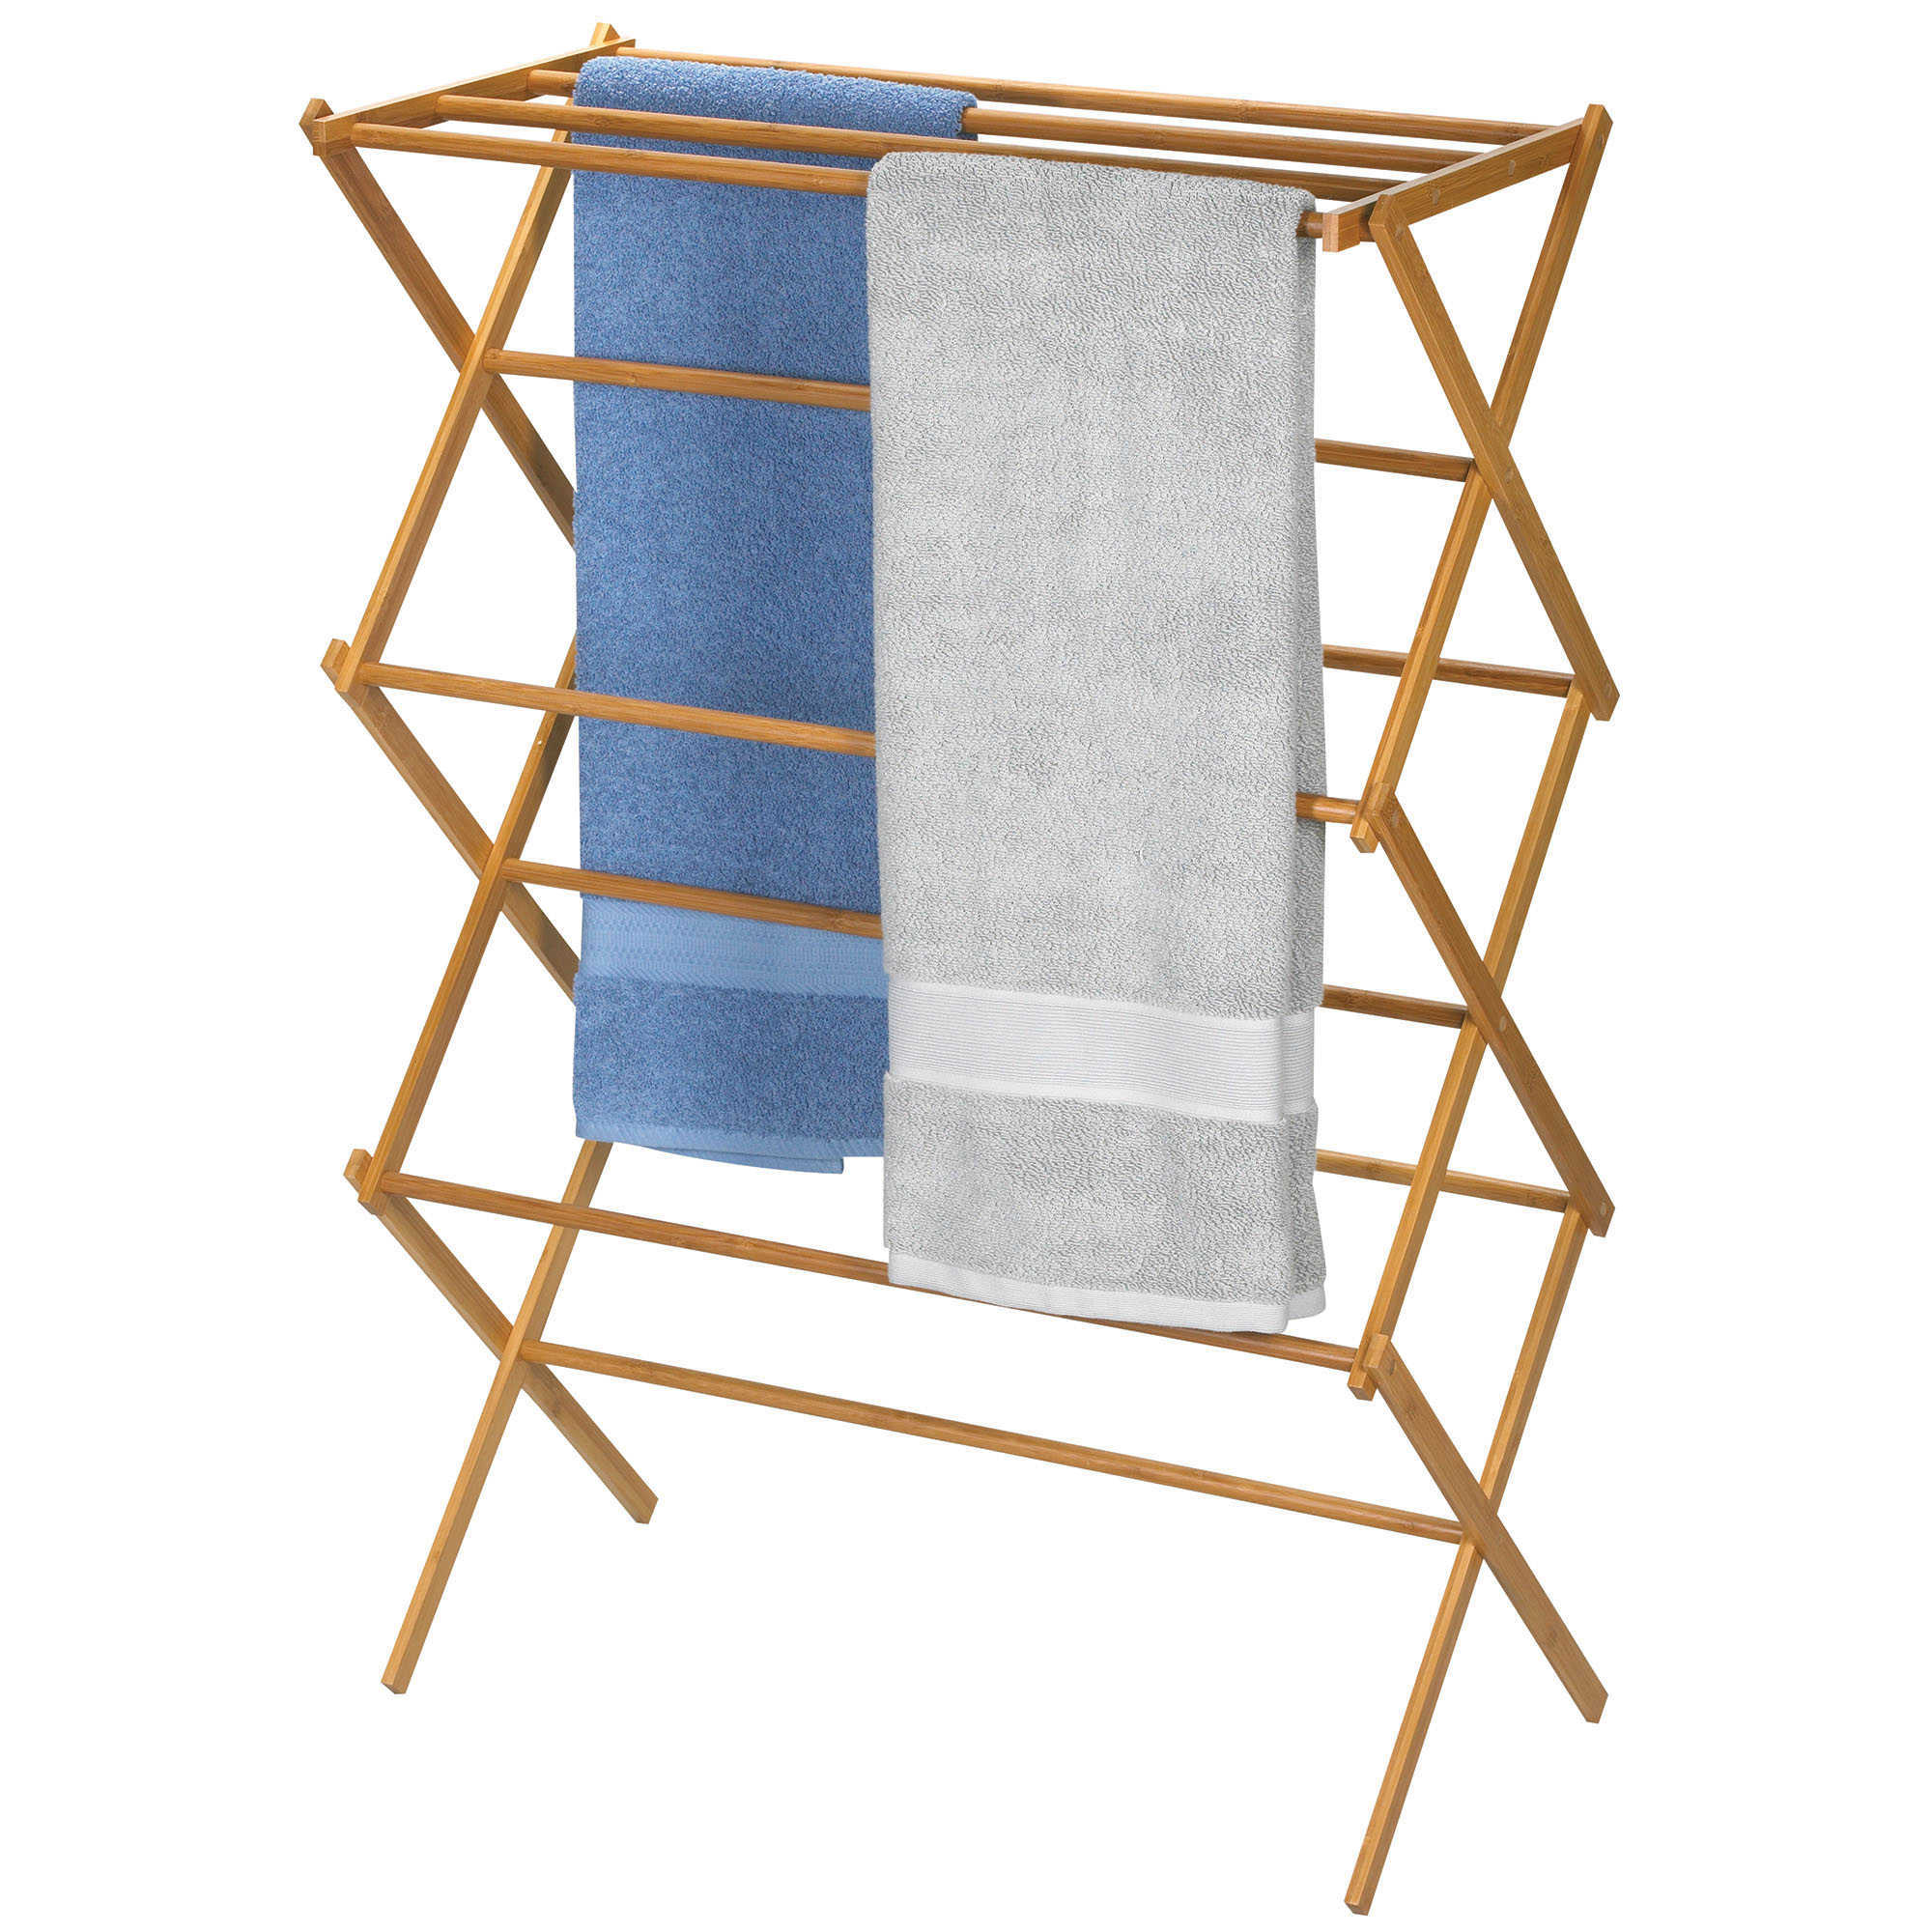 image of Household Essentials  Bamboo X Frame Clothes Drying Rack. Drying Racks  Laundry Organizers  Clothes Lines   Wash Bags   Bed